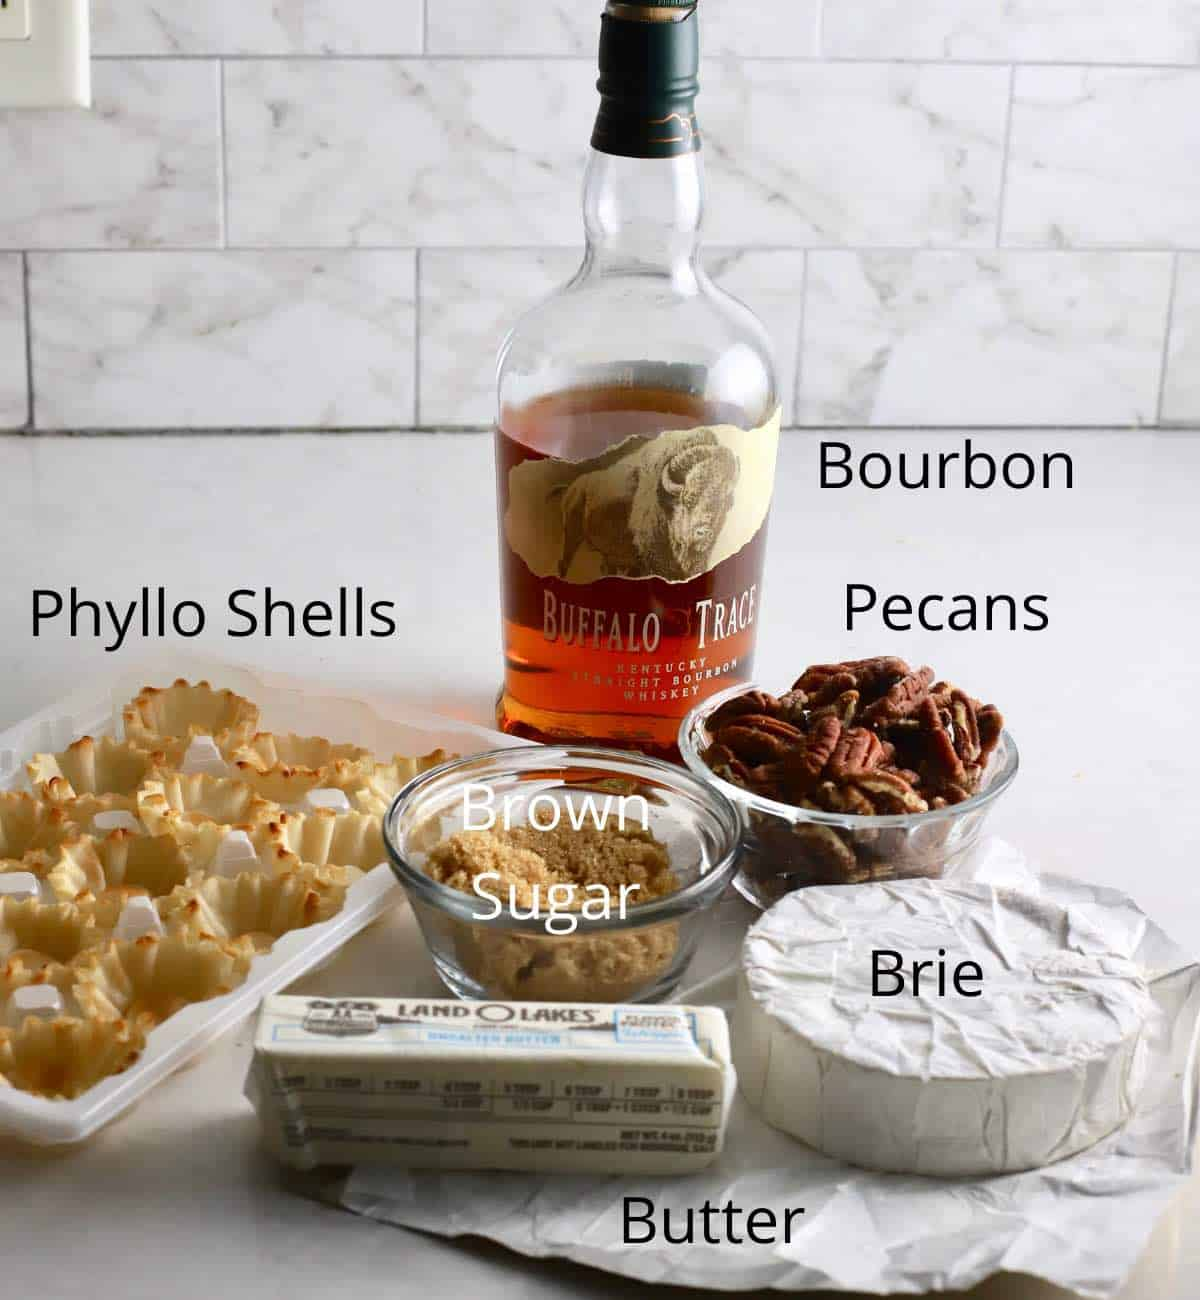 Ingredients to make brie bites including bourbon, phyllo shells, and brie cheese.